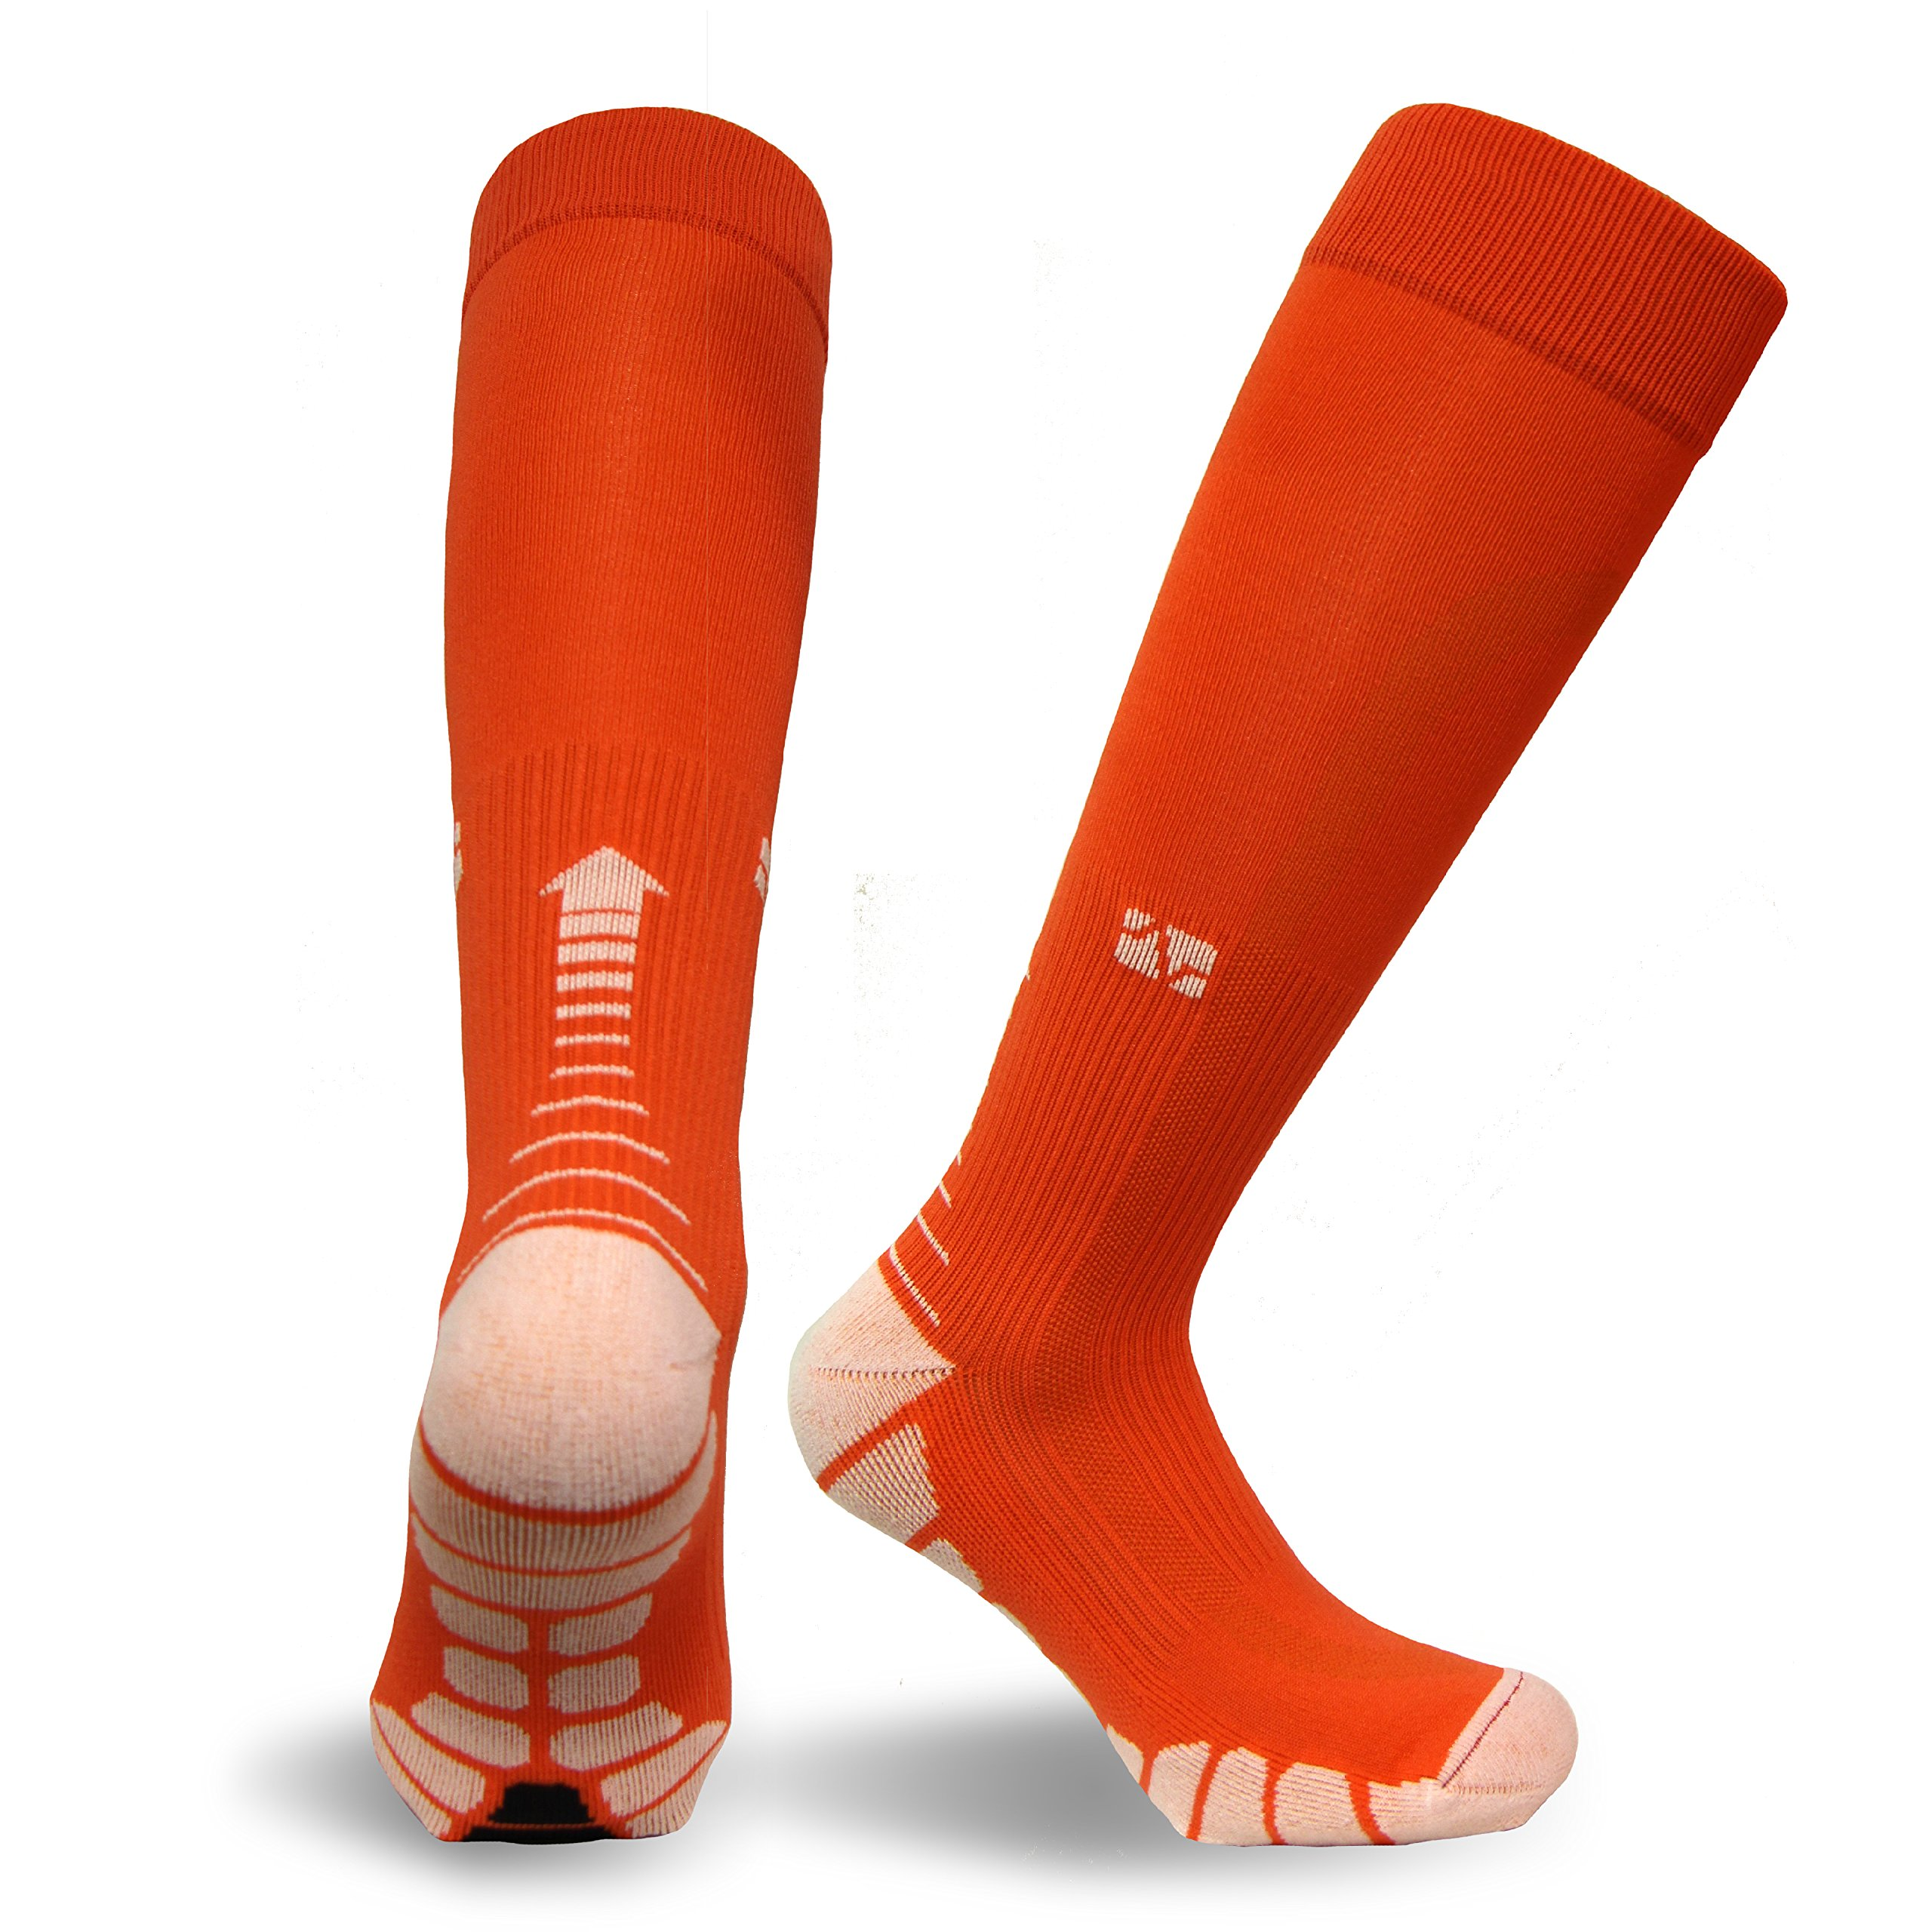 Vitalsox Italy-Patented Compression VT1211,X-Small,Orange by Vitalsox (Image #1)